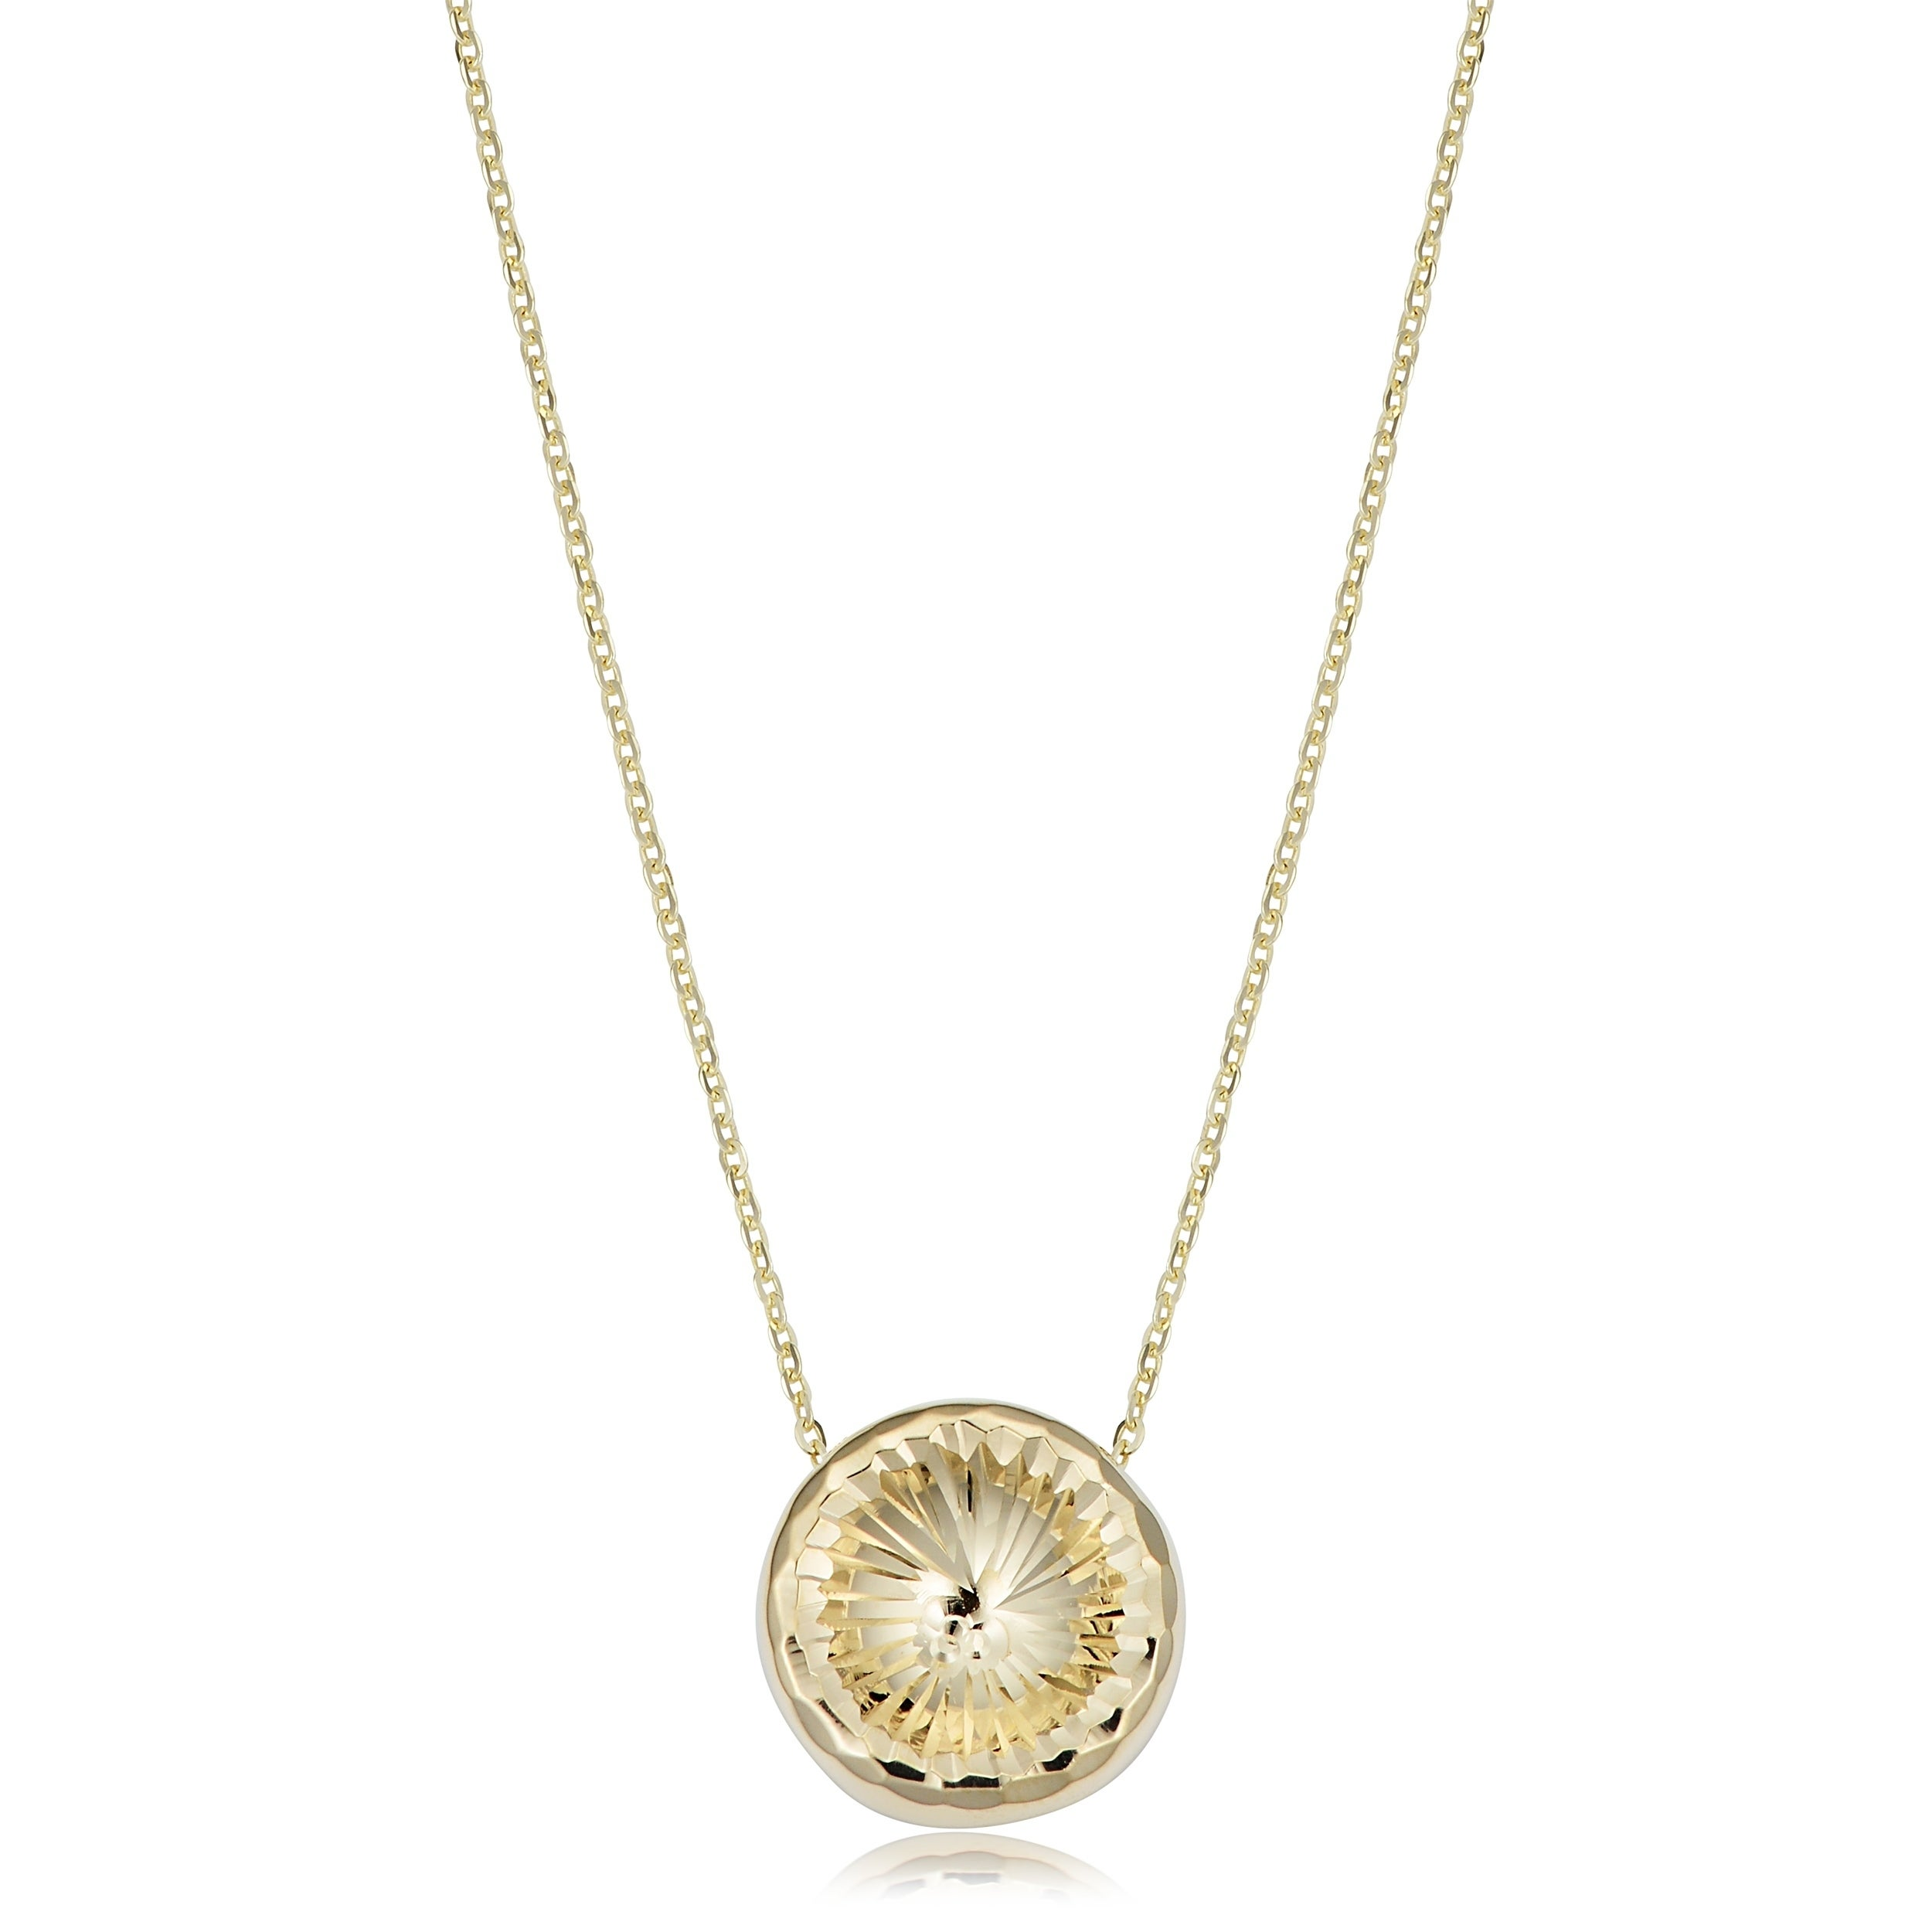 Shop 14k Yellow Gold Diamond Cut Round Pendant Adjustable Length Necklace Adjusts To 17 Or 18 Inches On Sale Overstock 25072958